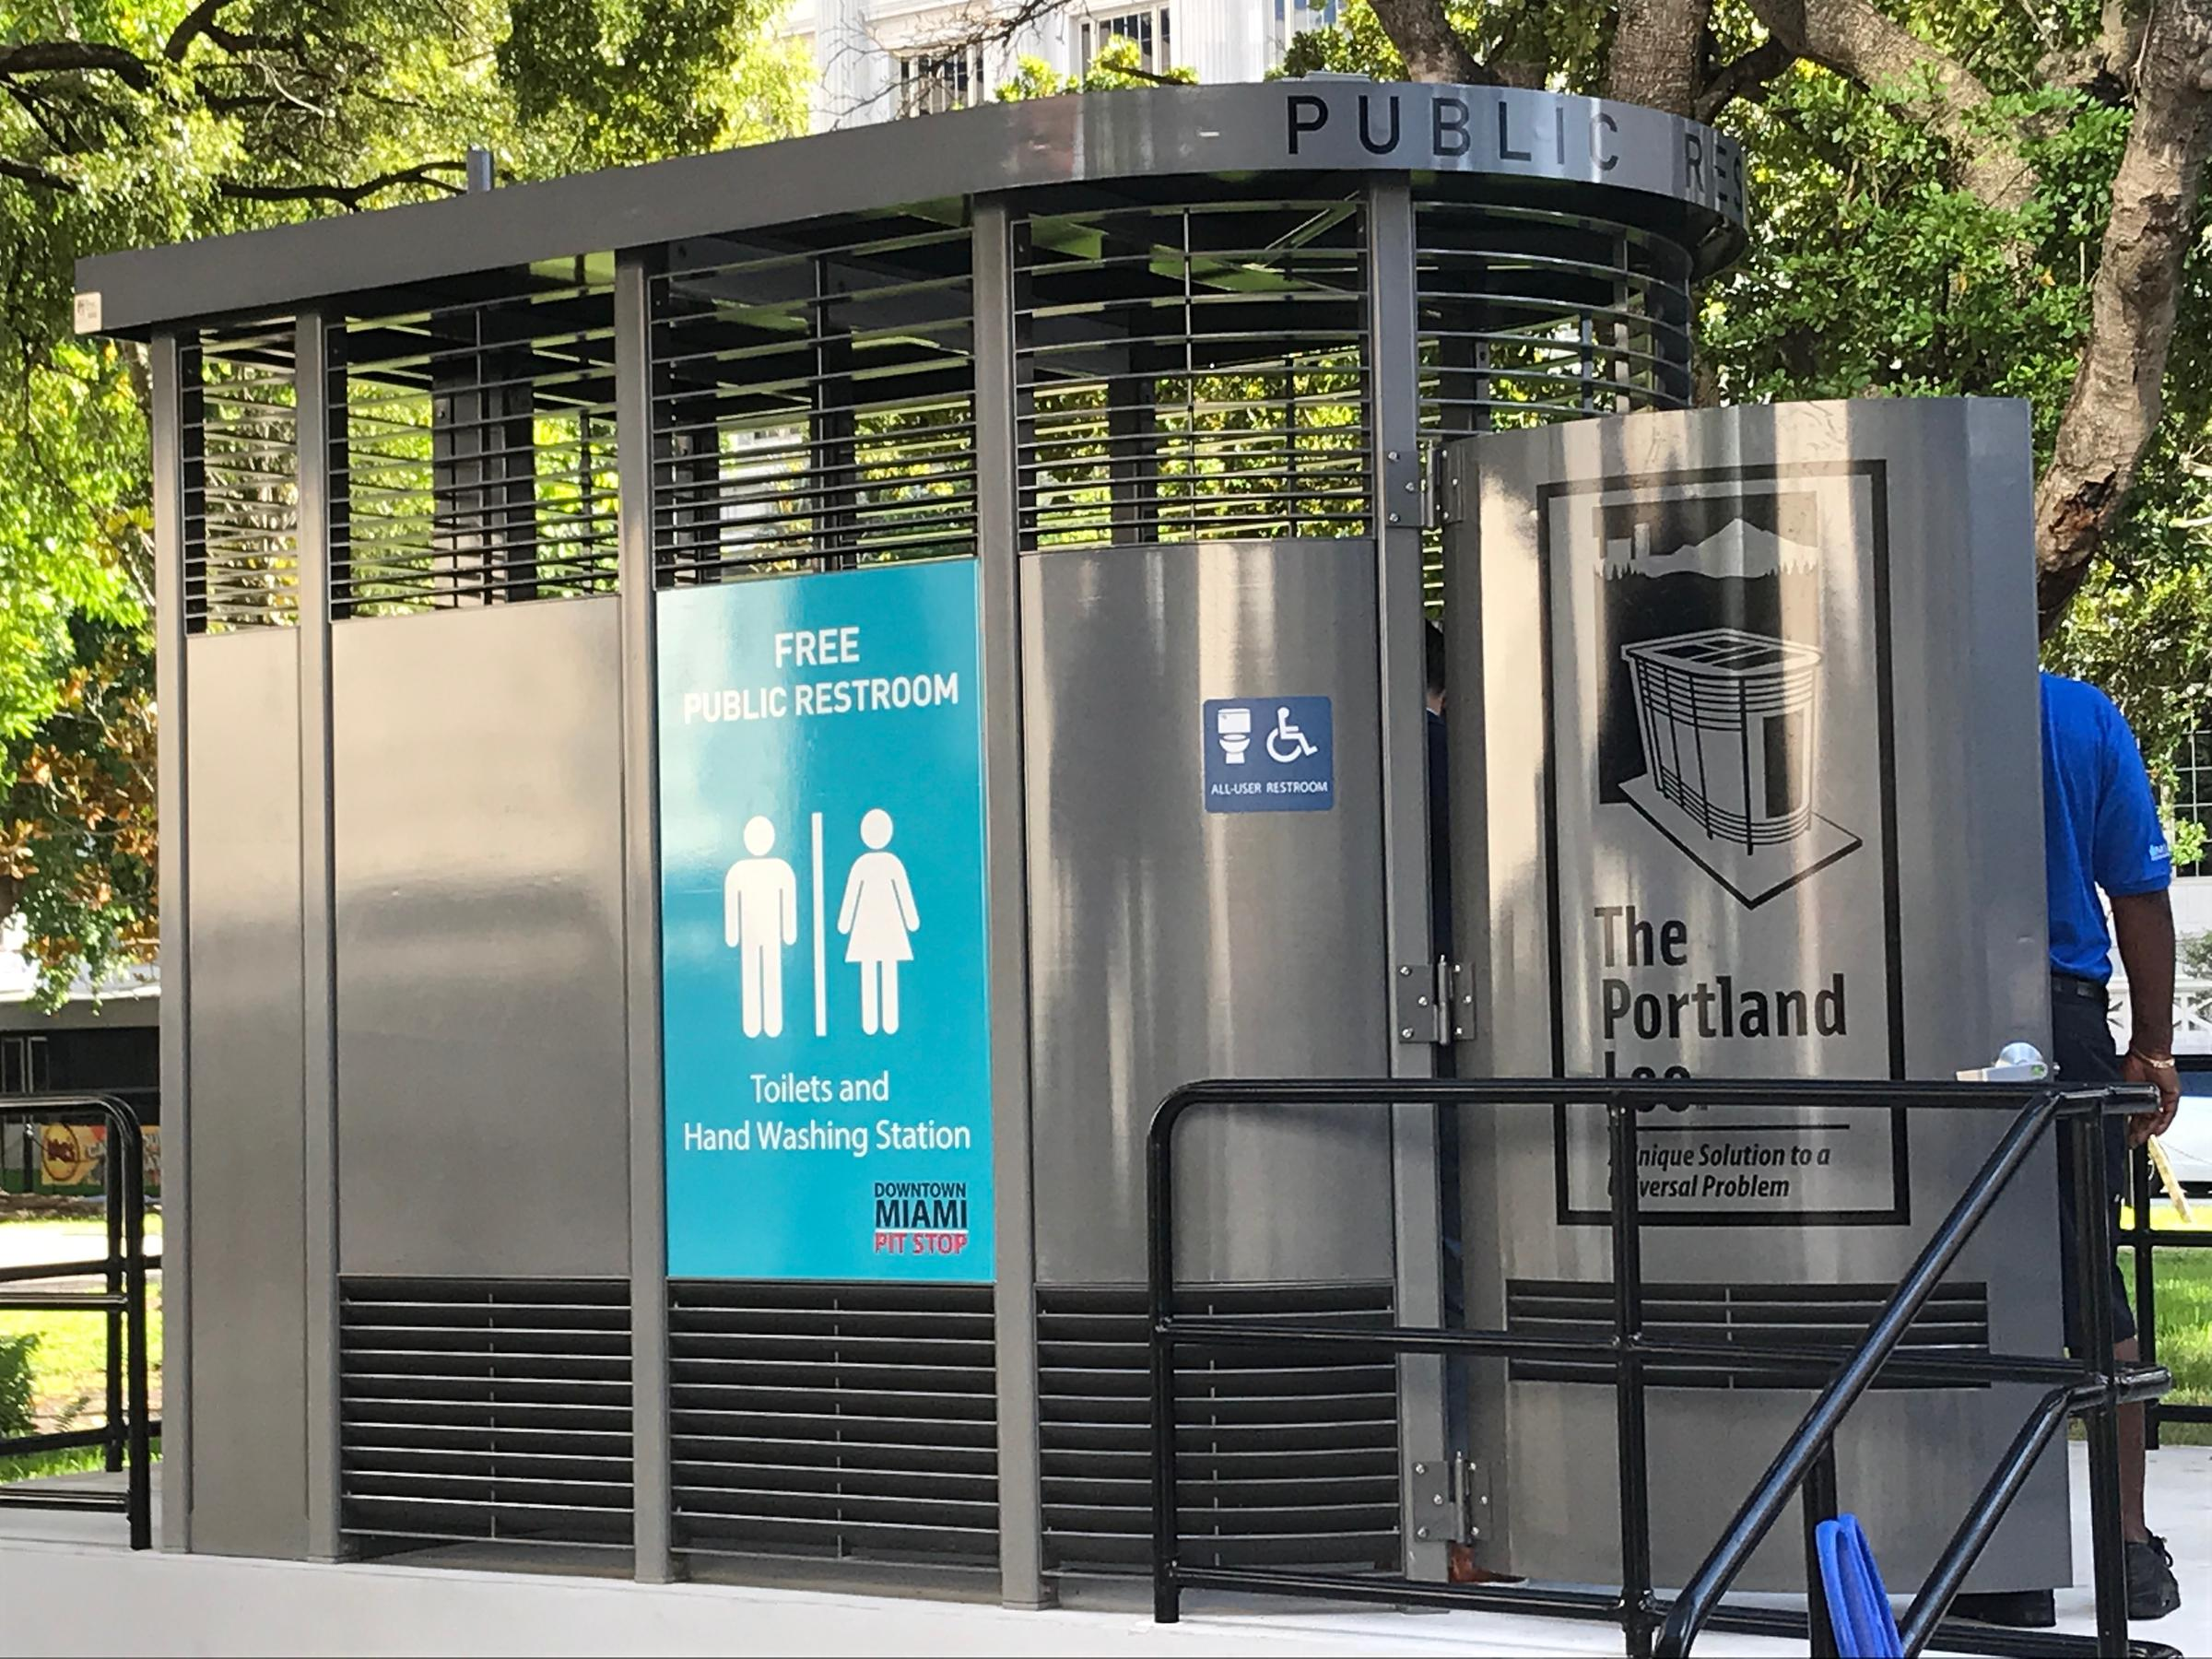 HSE Experts call on Govt. on Public Toilet Facilities